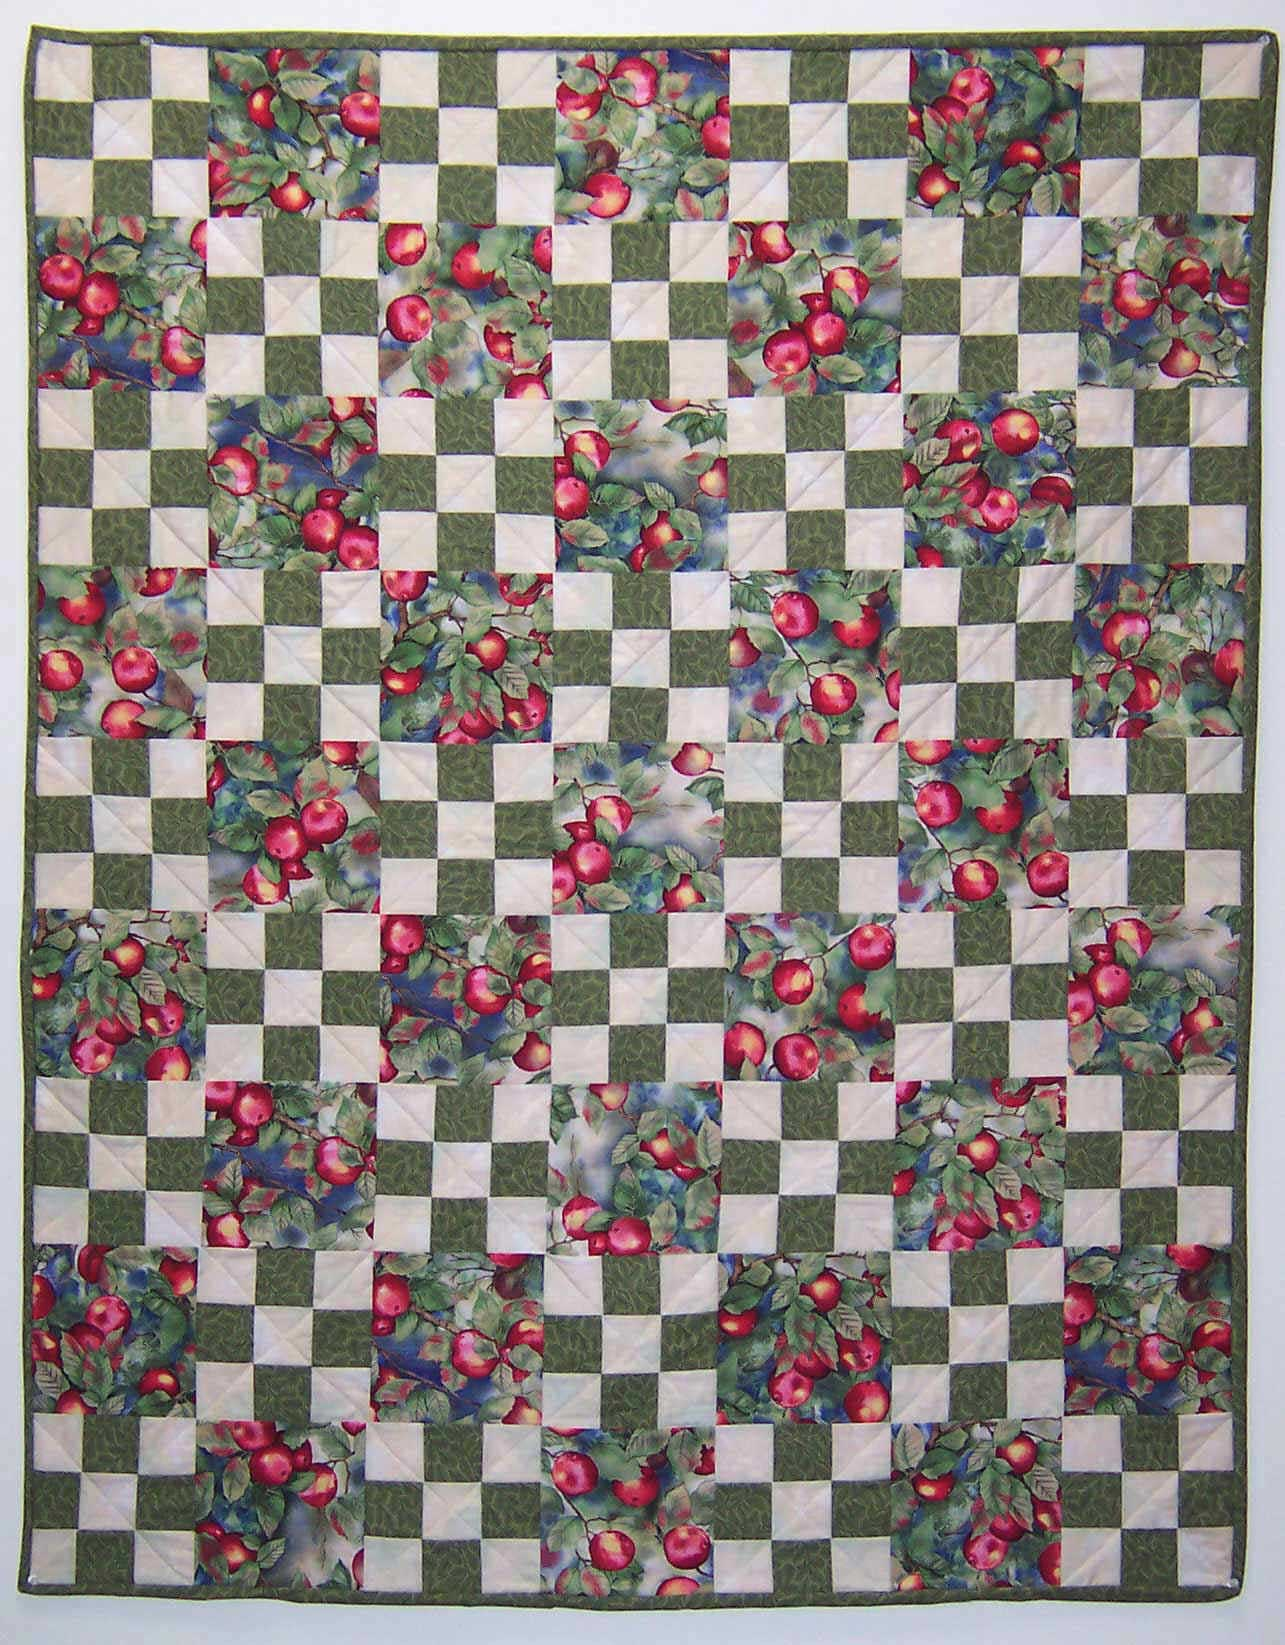 StoryQuilts.com-quilting supplies, quilt patterns, block of the